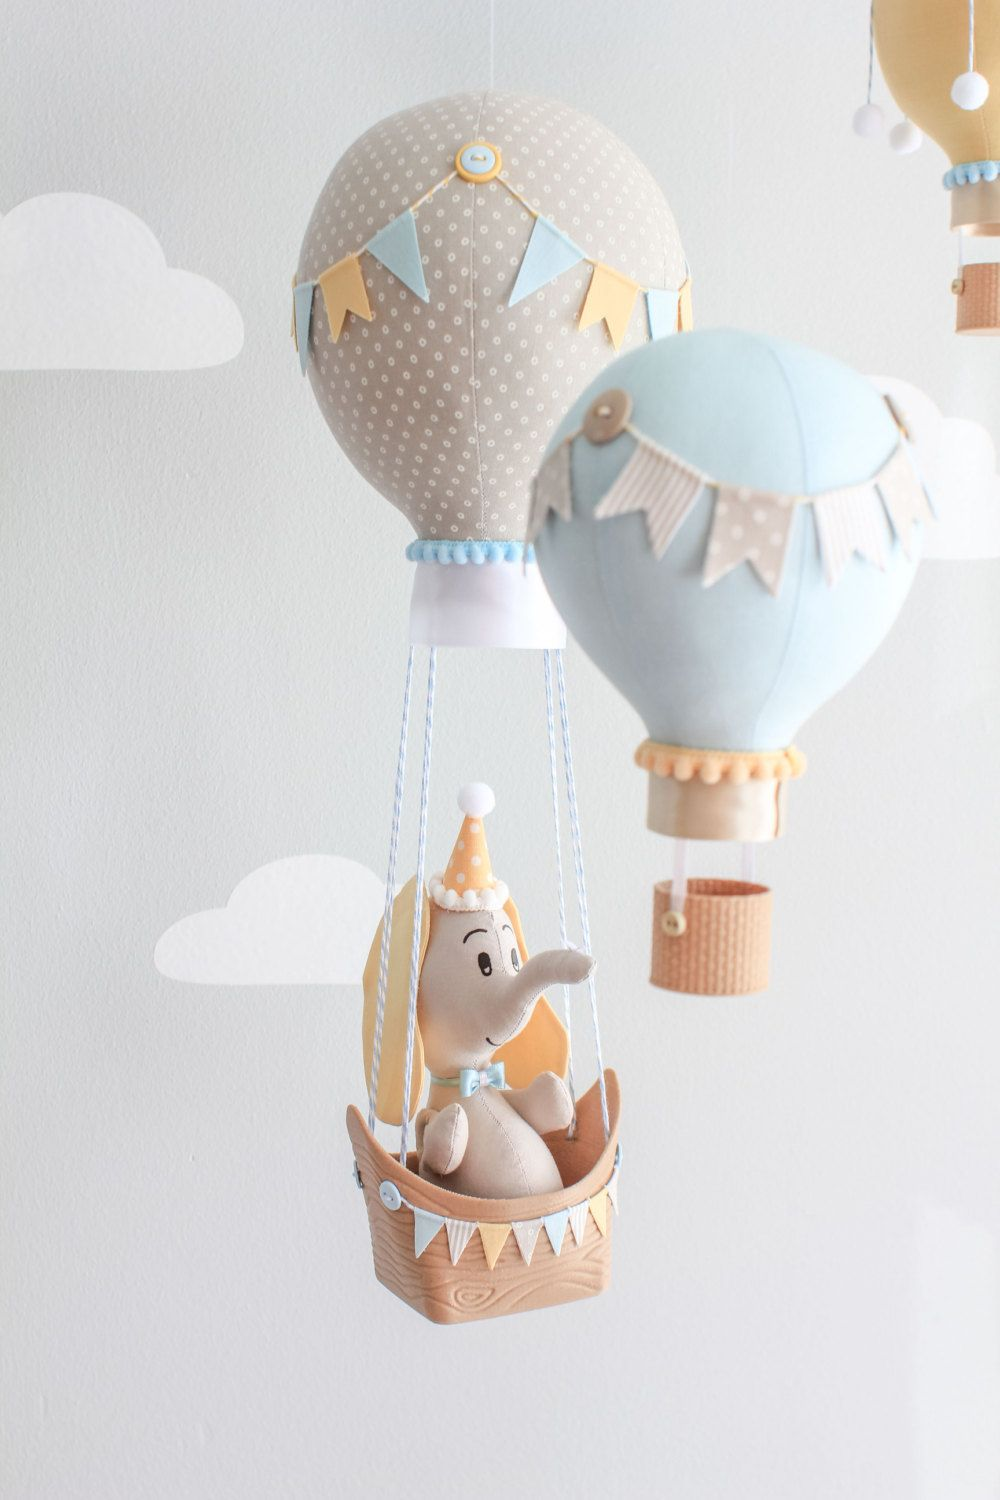 Hot Air Balloon Baby Mobile, Giraffe and Elephant Nursery